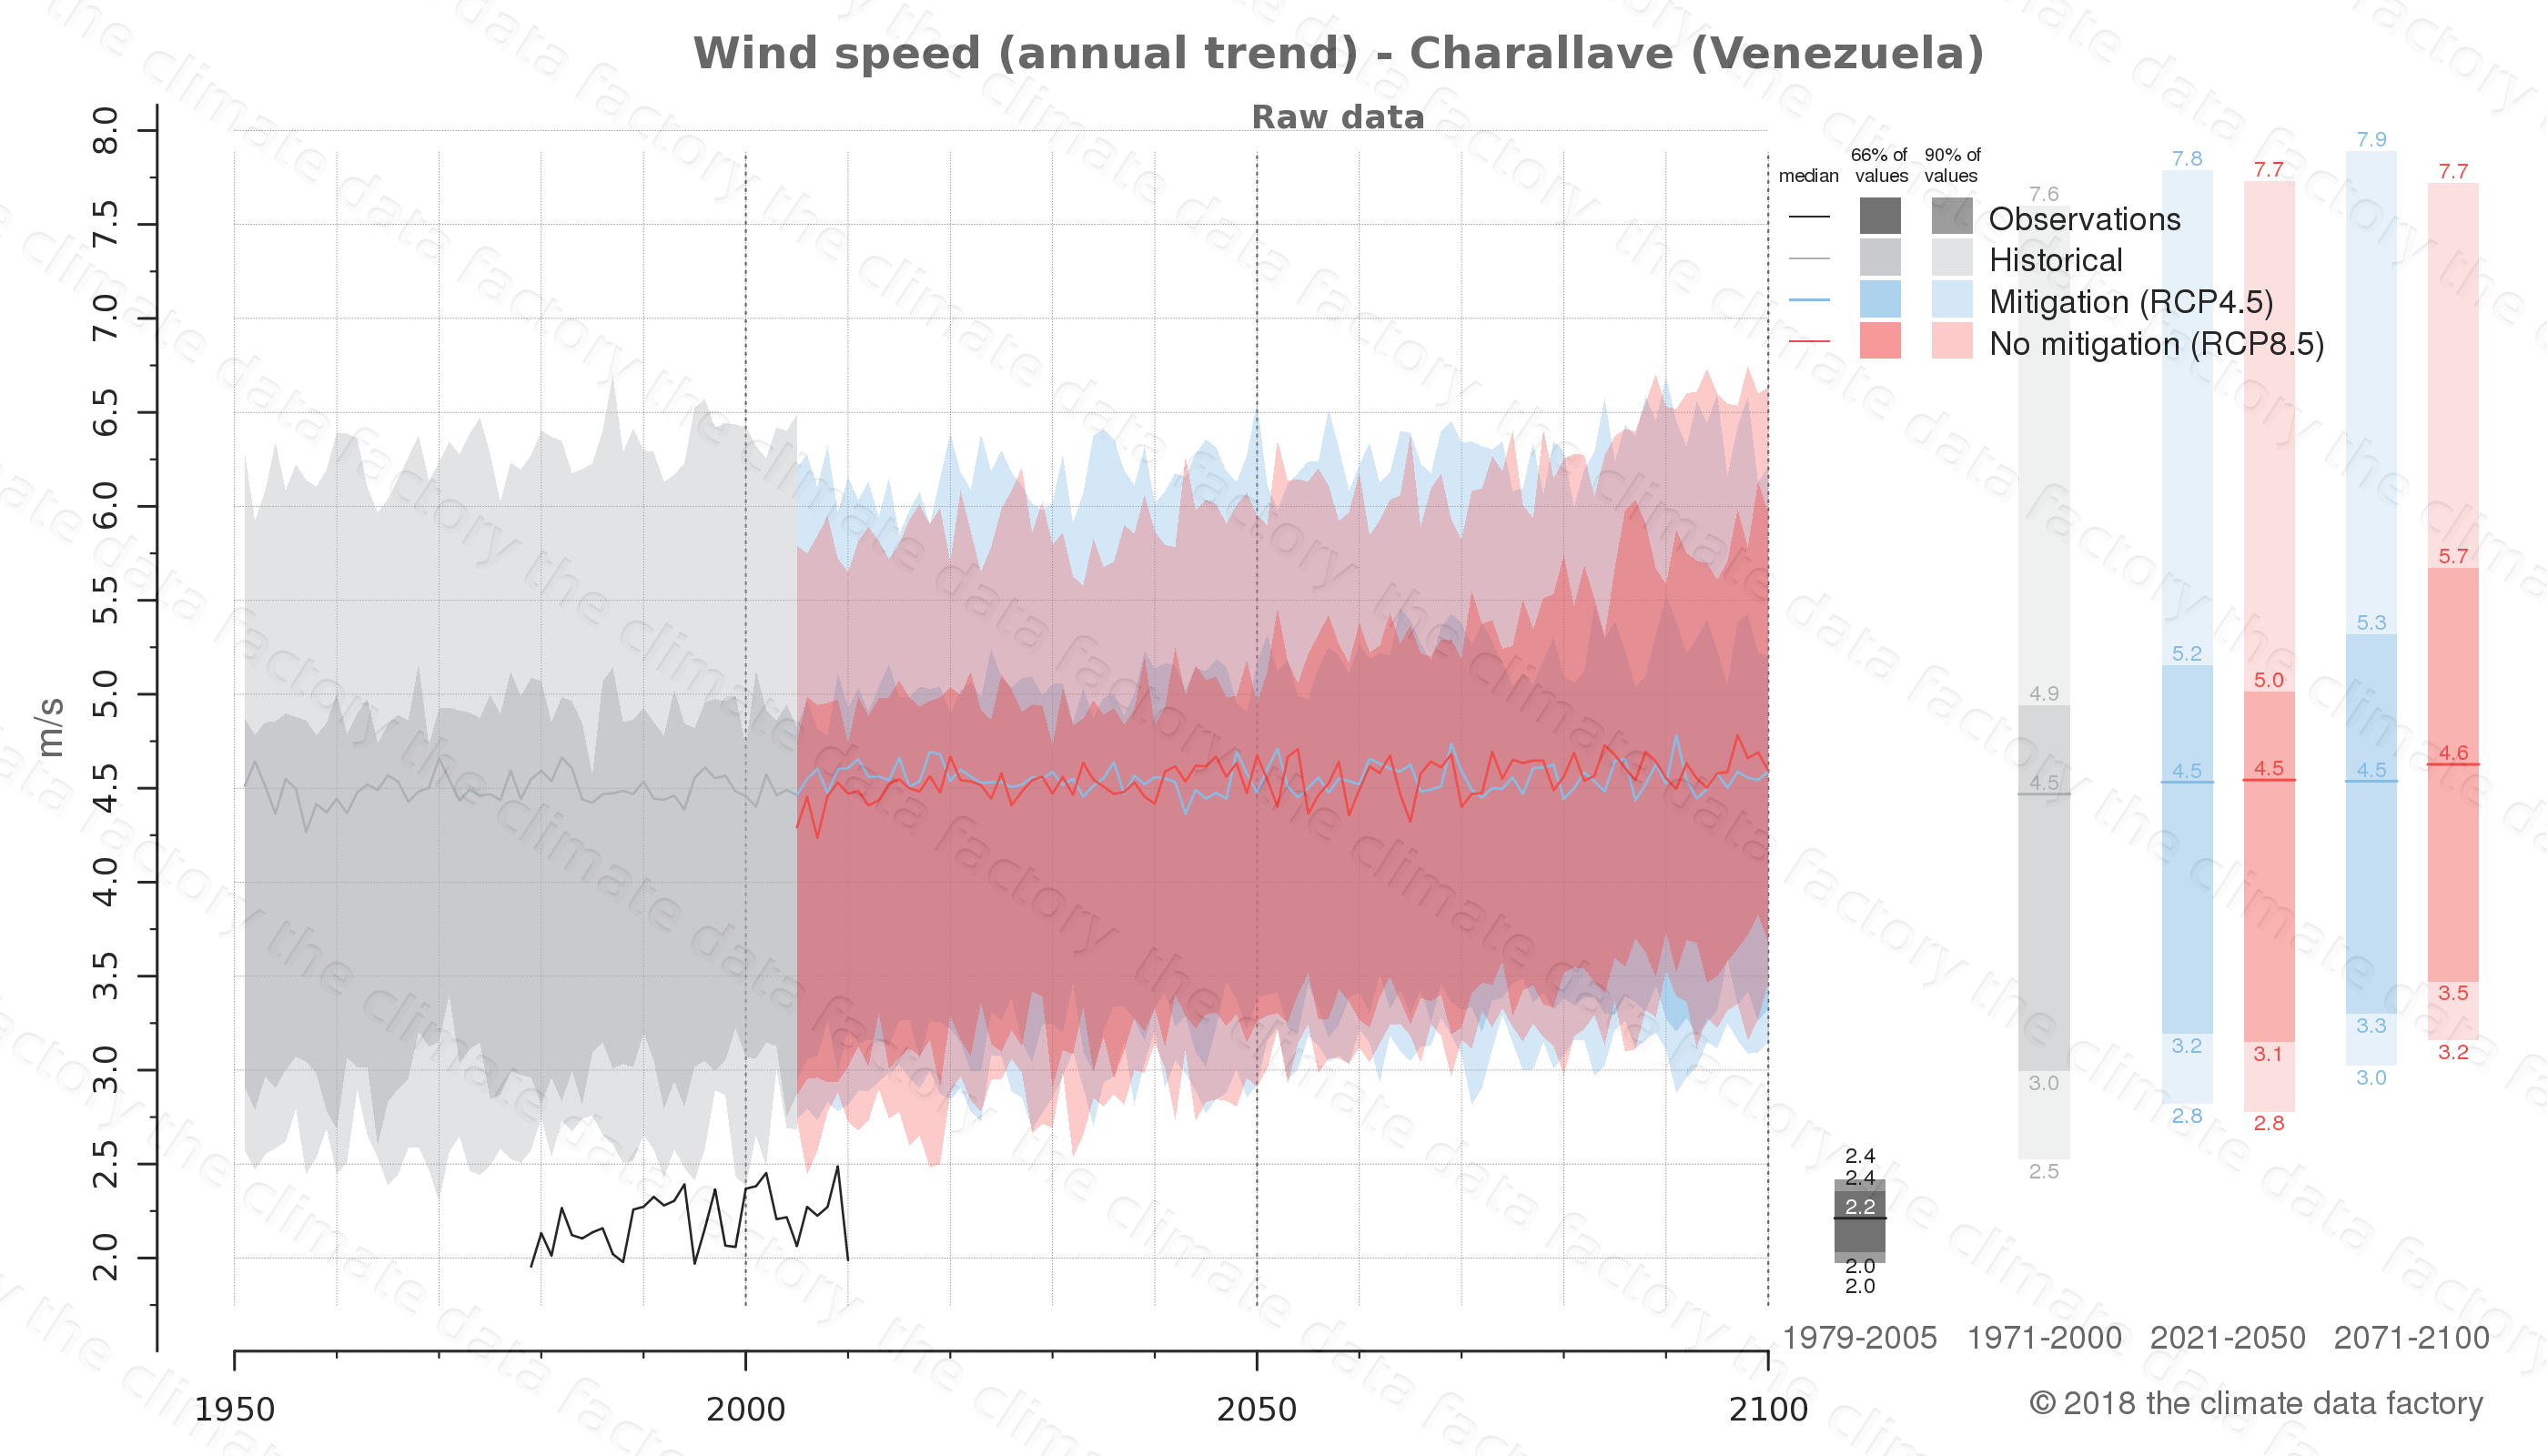 climate change data policy adaptation climate graph city data wind-speed charallave venezuela